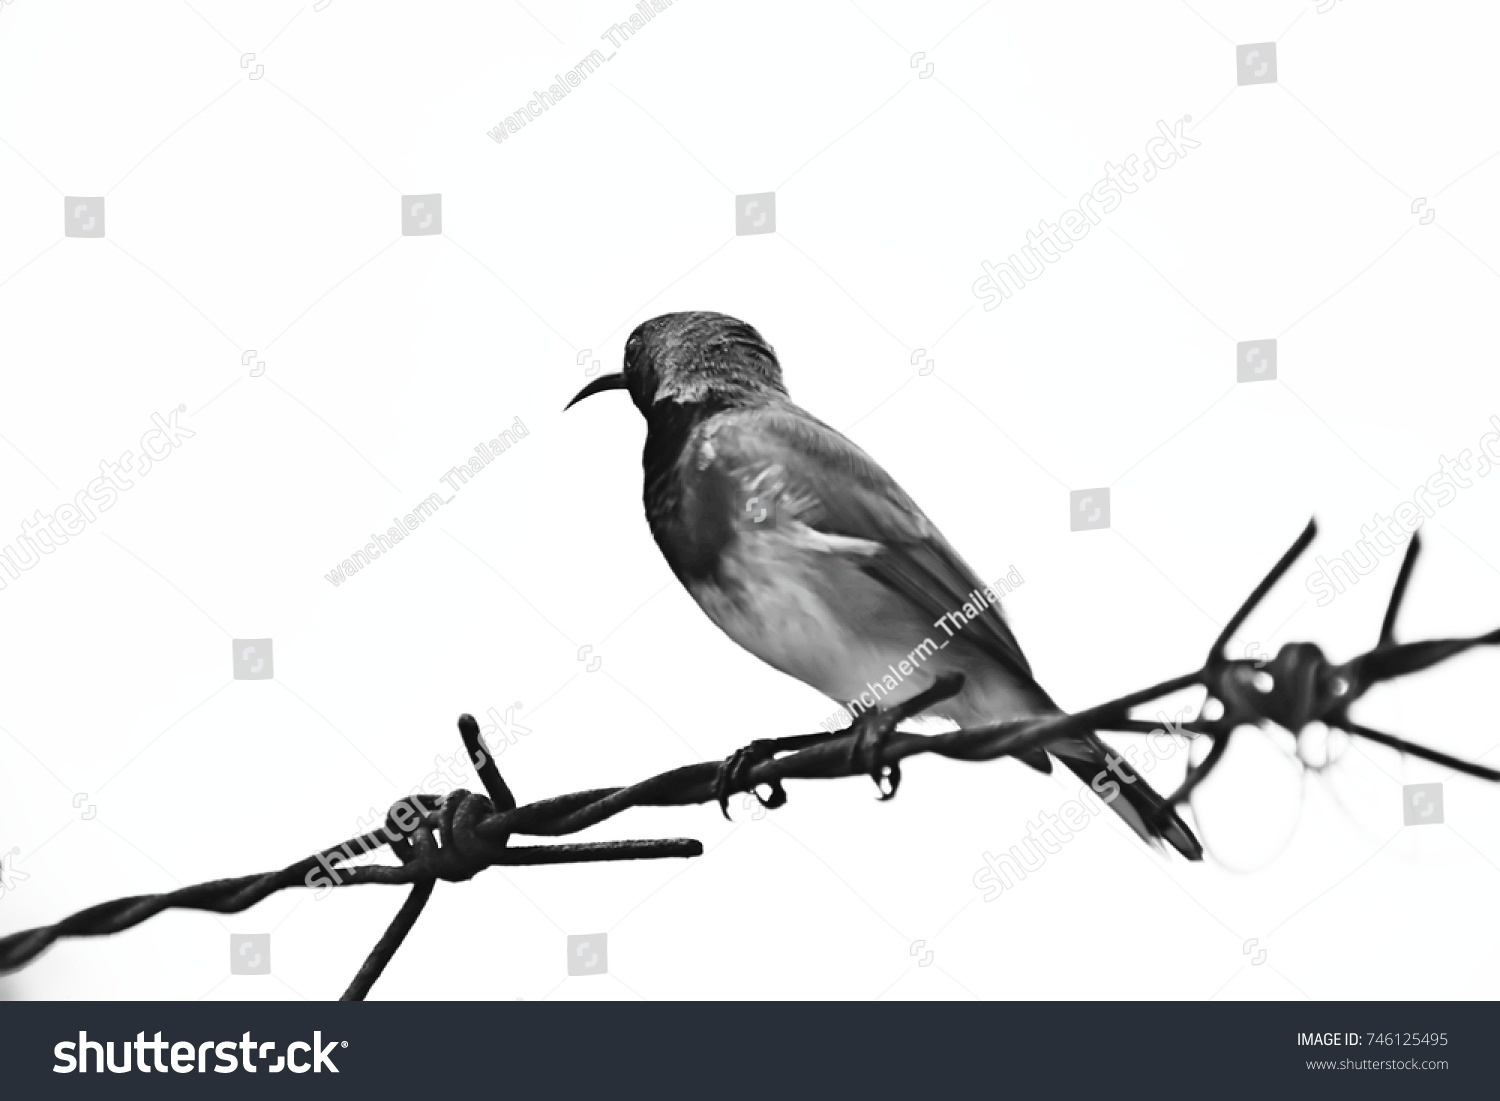 Silhouette Small Bird Perched On Strand Stock Photo 746125495 ...